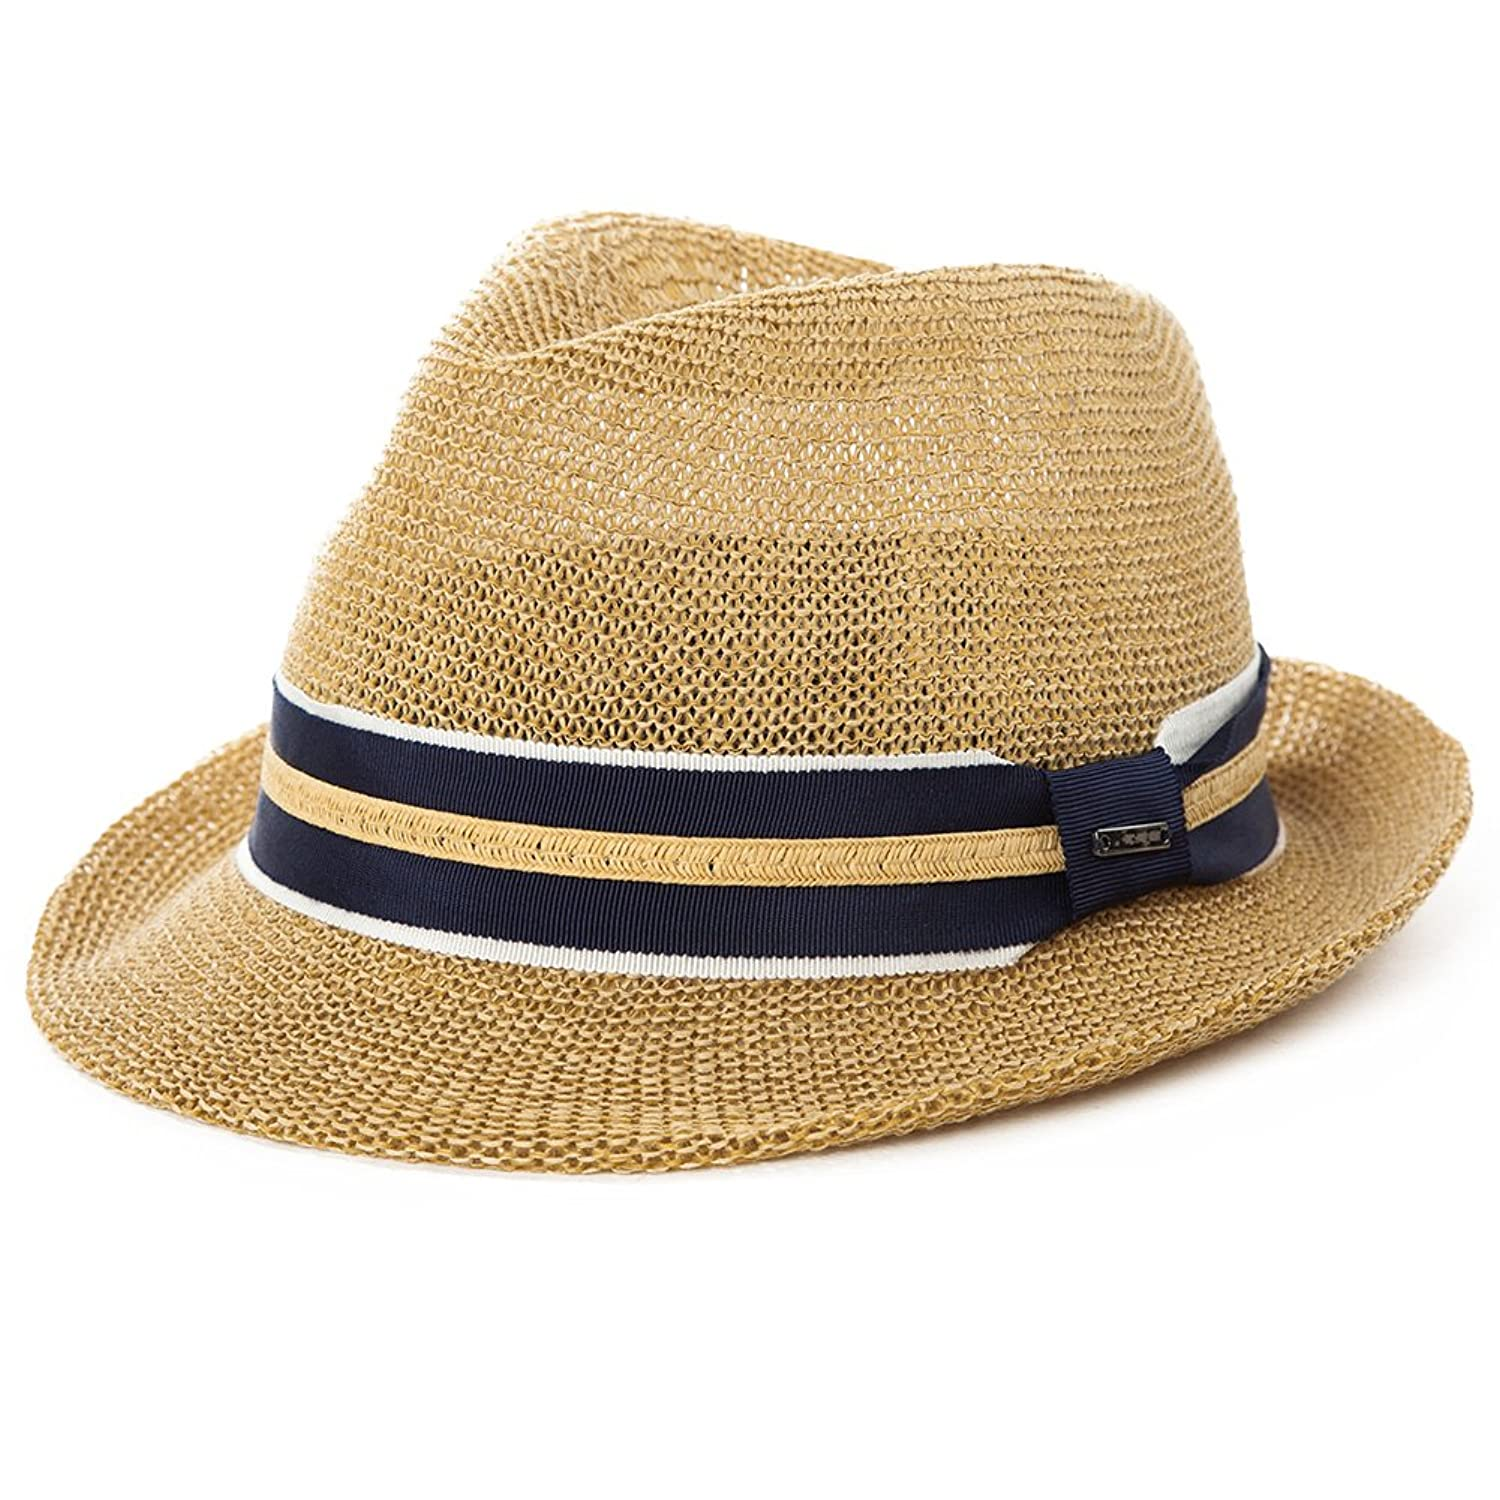 d224cac8 Timely Hats for Seasonable Men - The GentleManual | A Handbook for ...